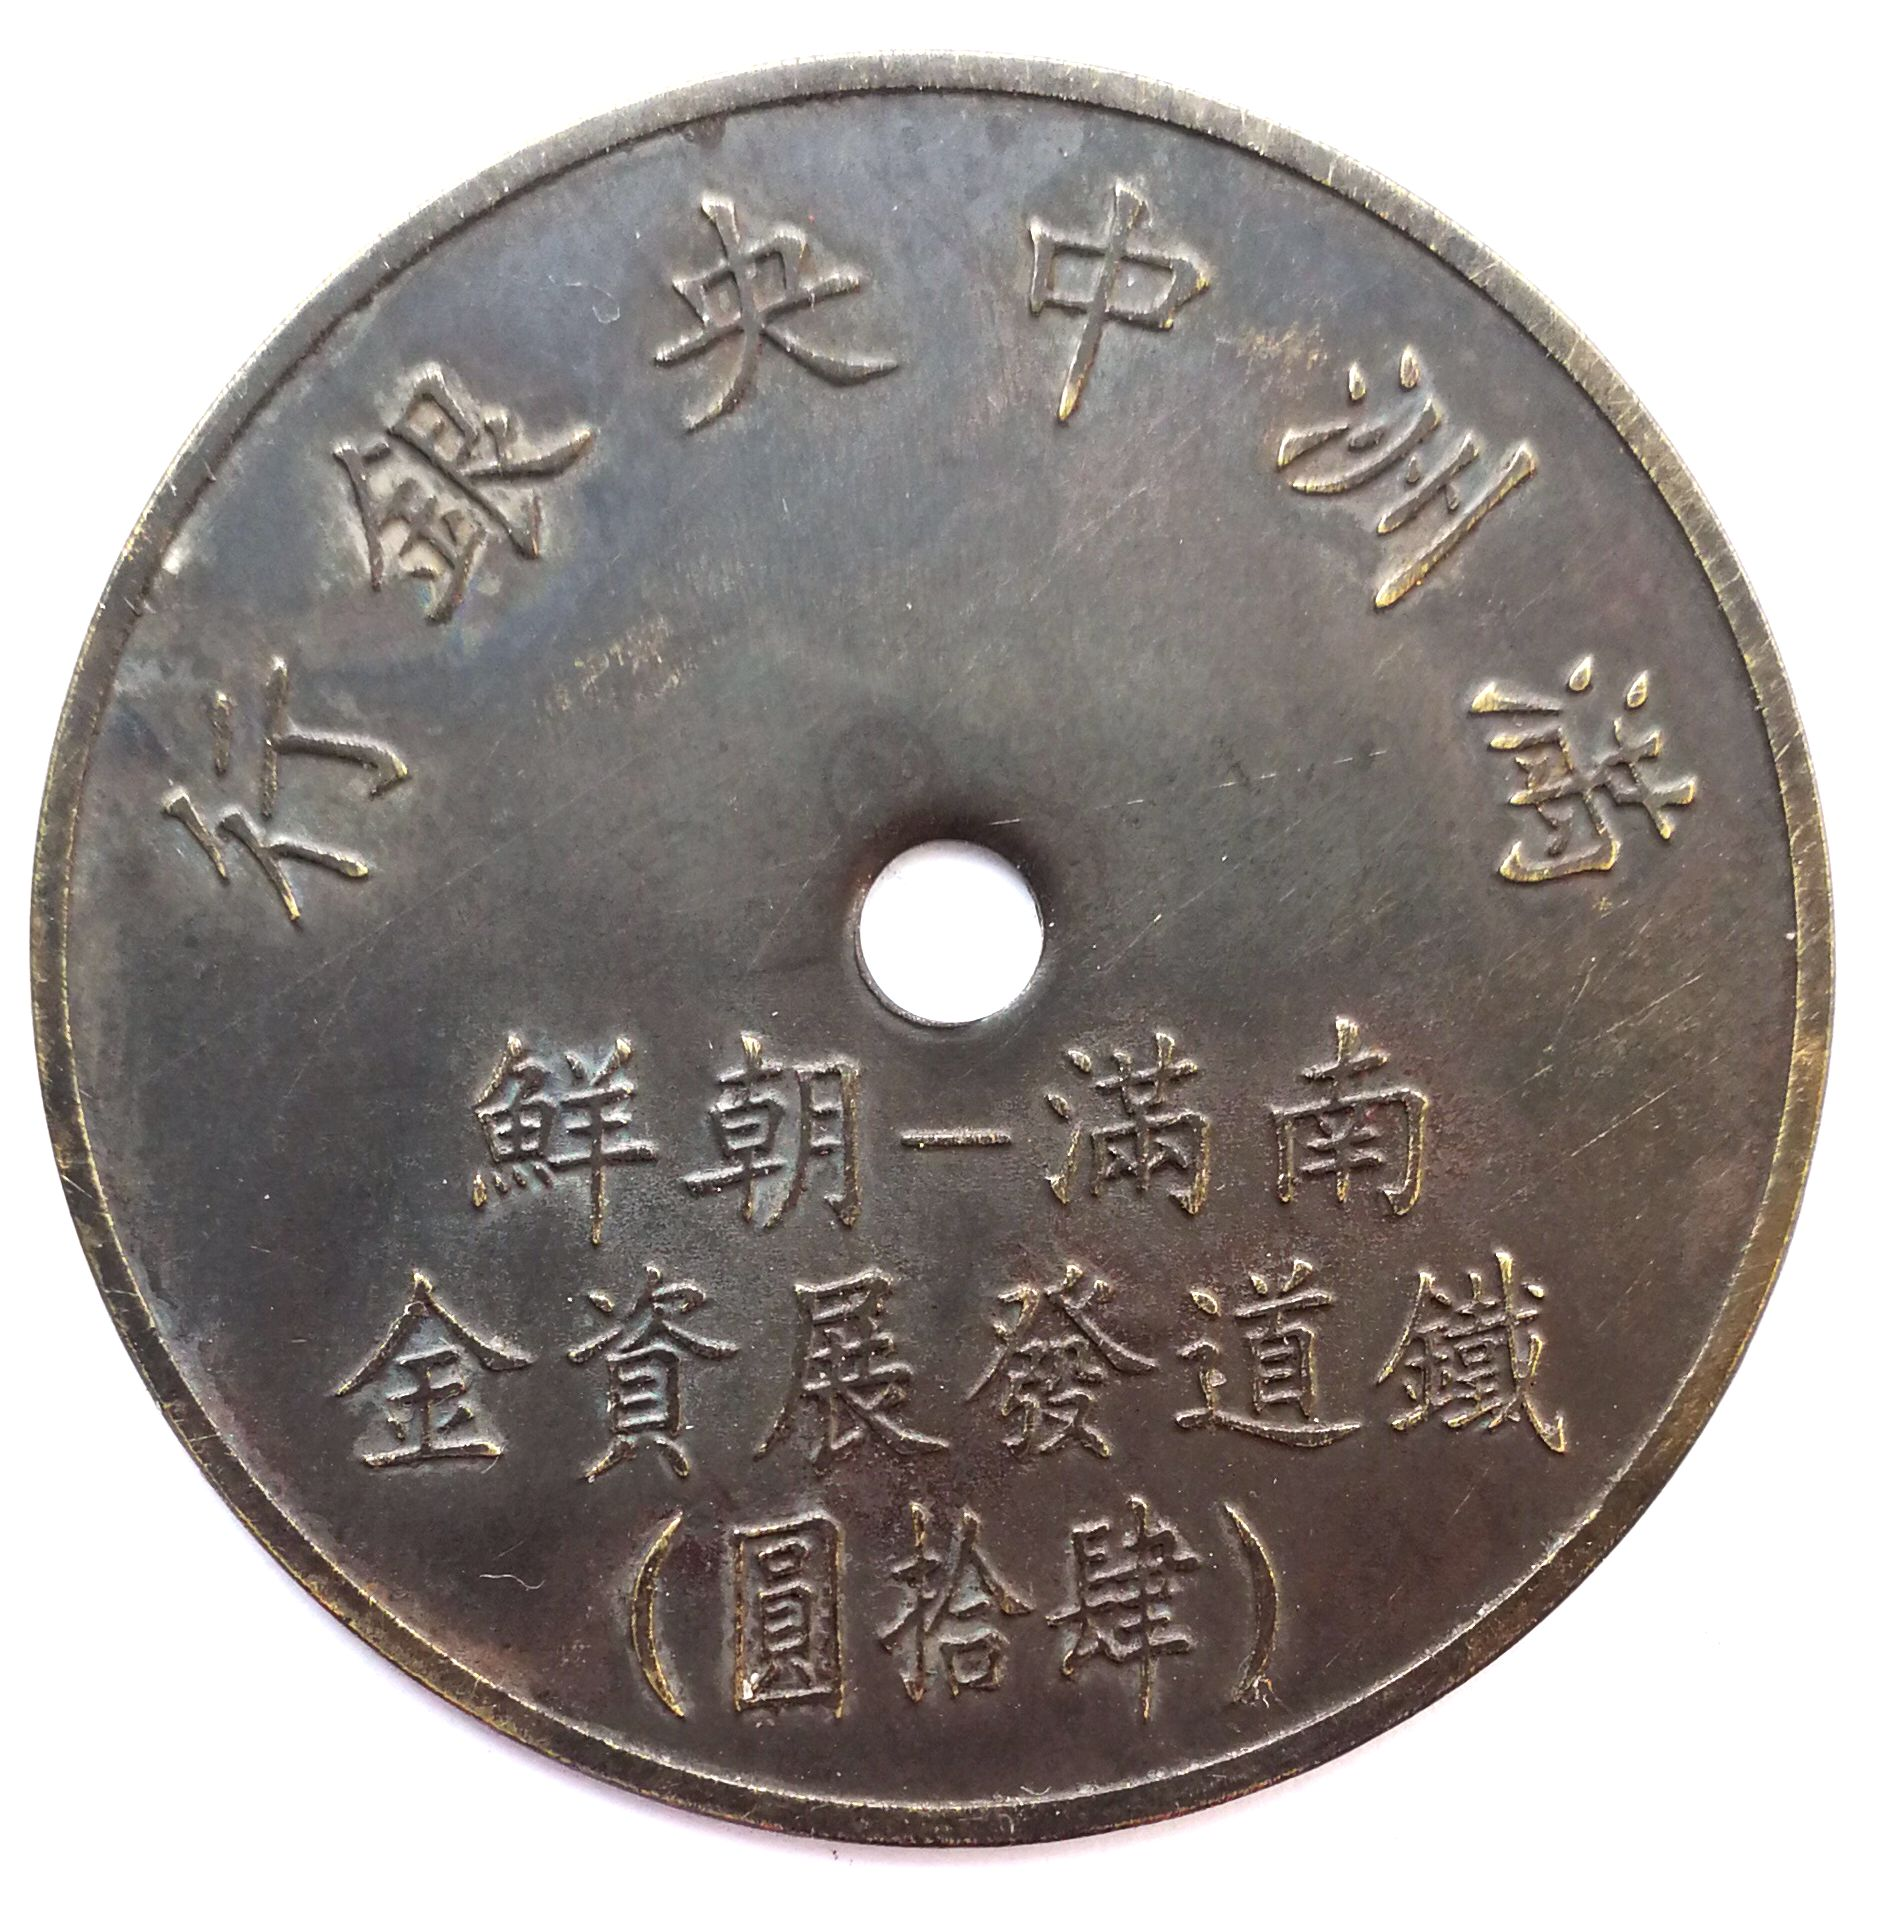 BT493, Korea-Manchukuo Railway Developement Fund, Token Bond, 40 Yen, 1944